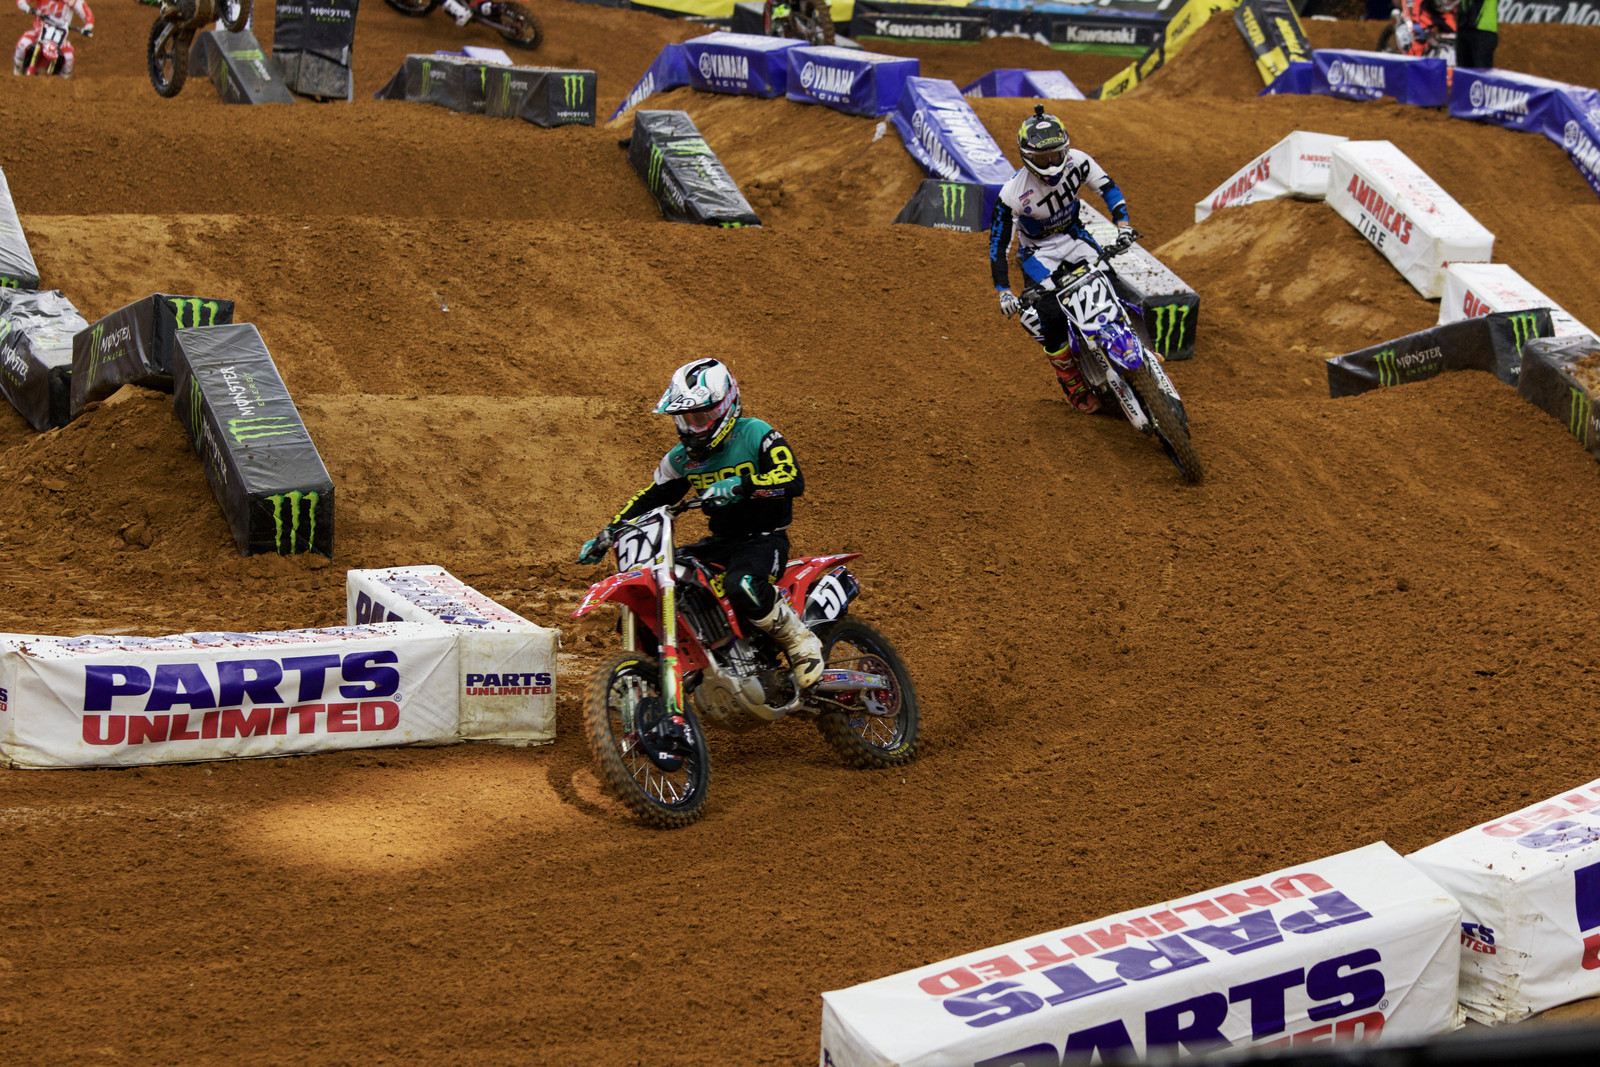 Jimmy Decotis and Dan Reardon - Views from the Stands - 2017 Arlington SX - Motocross Pictures - Vital MX